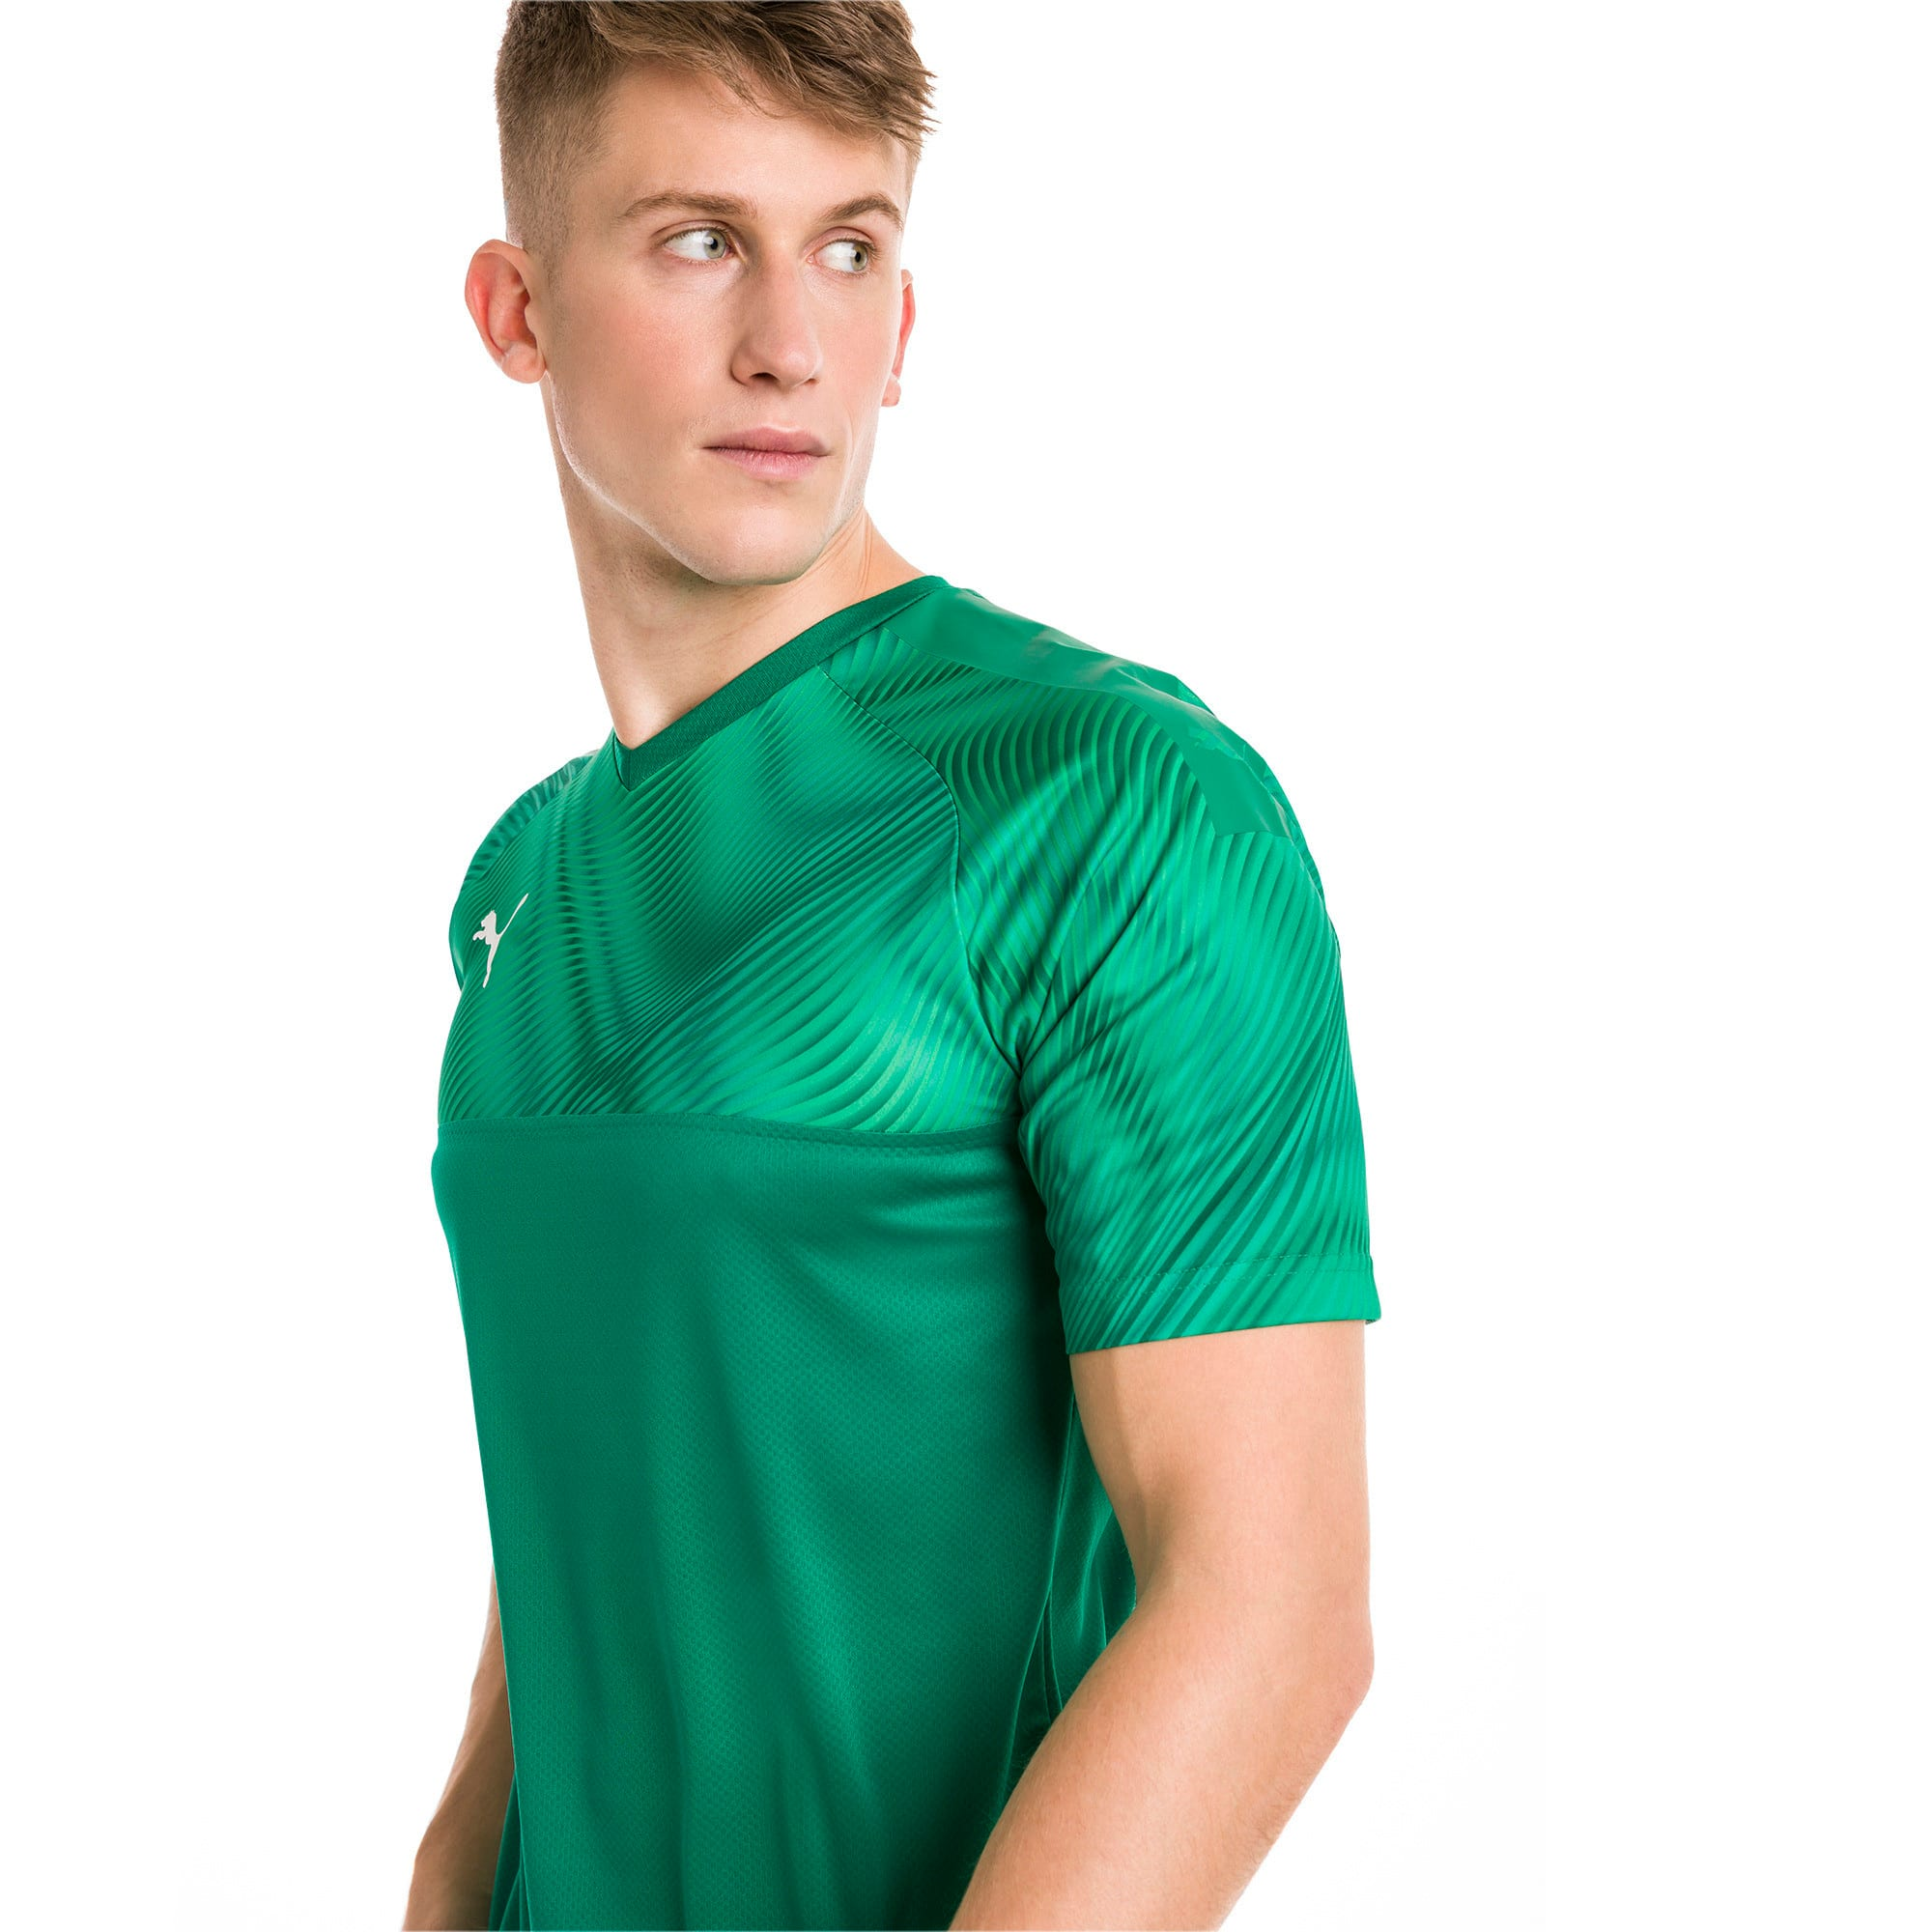 CUP Men's Football Jersey, Pepper Green-Puma White, large